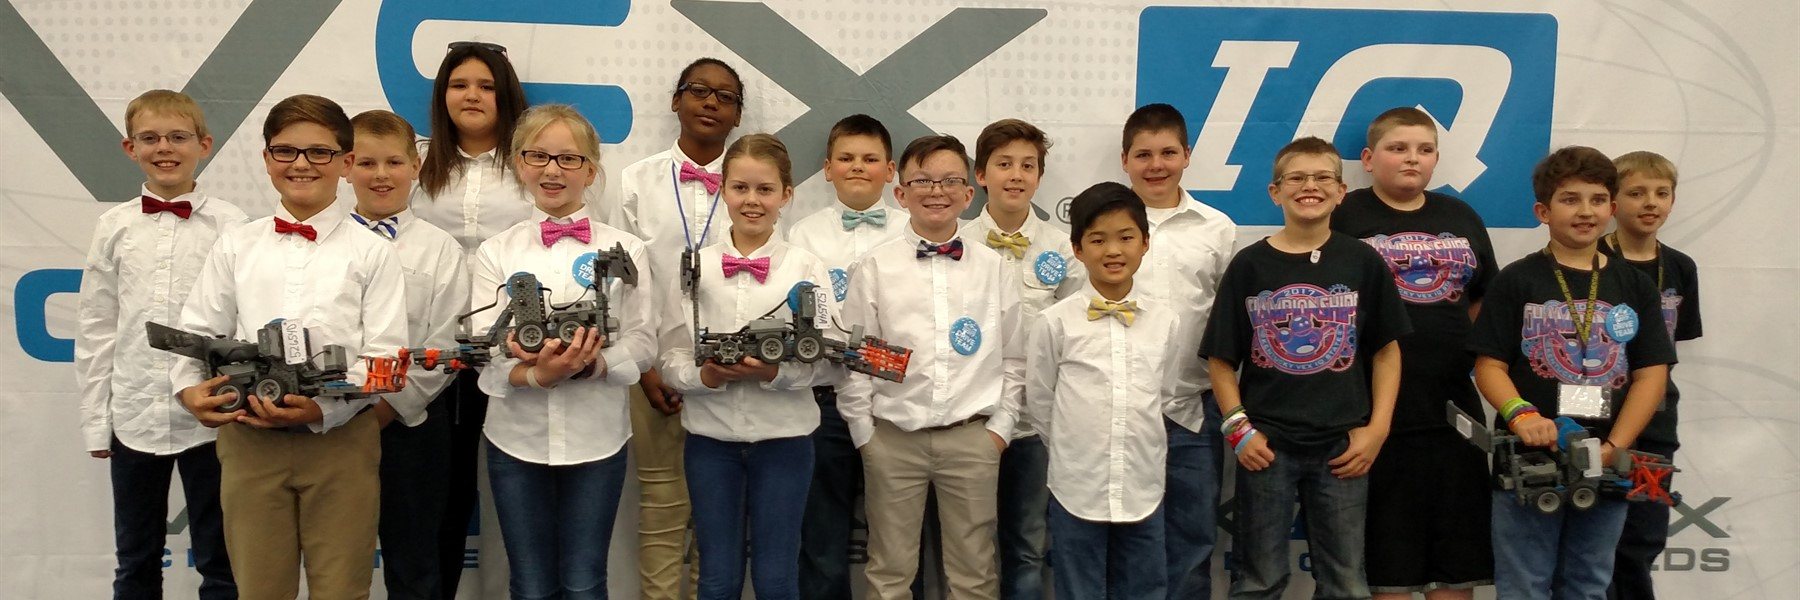 Robotics teams from Northern and Stamping Ground compete at VEX Worlds.